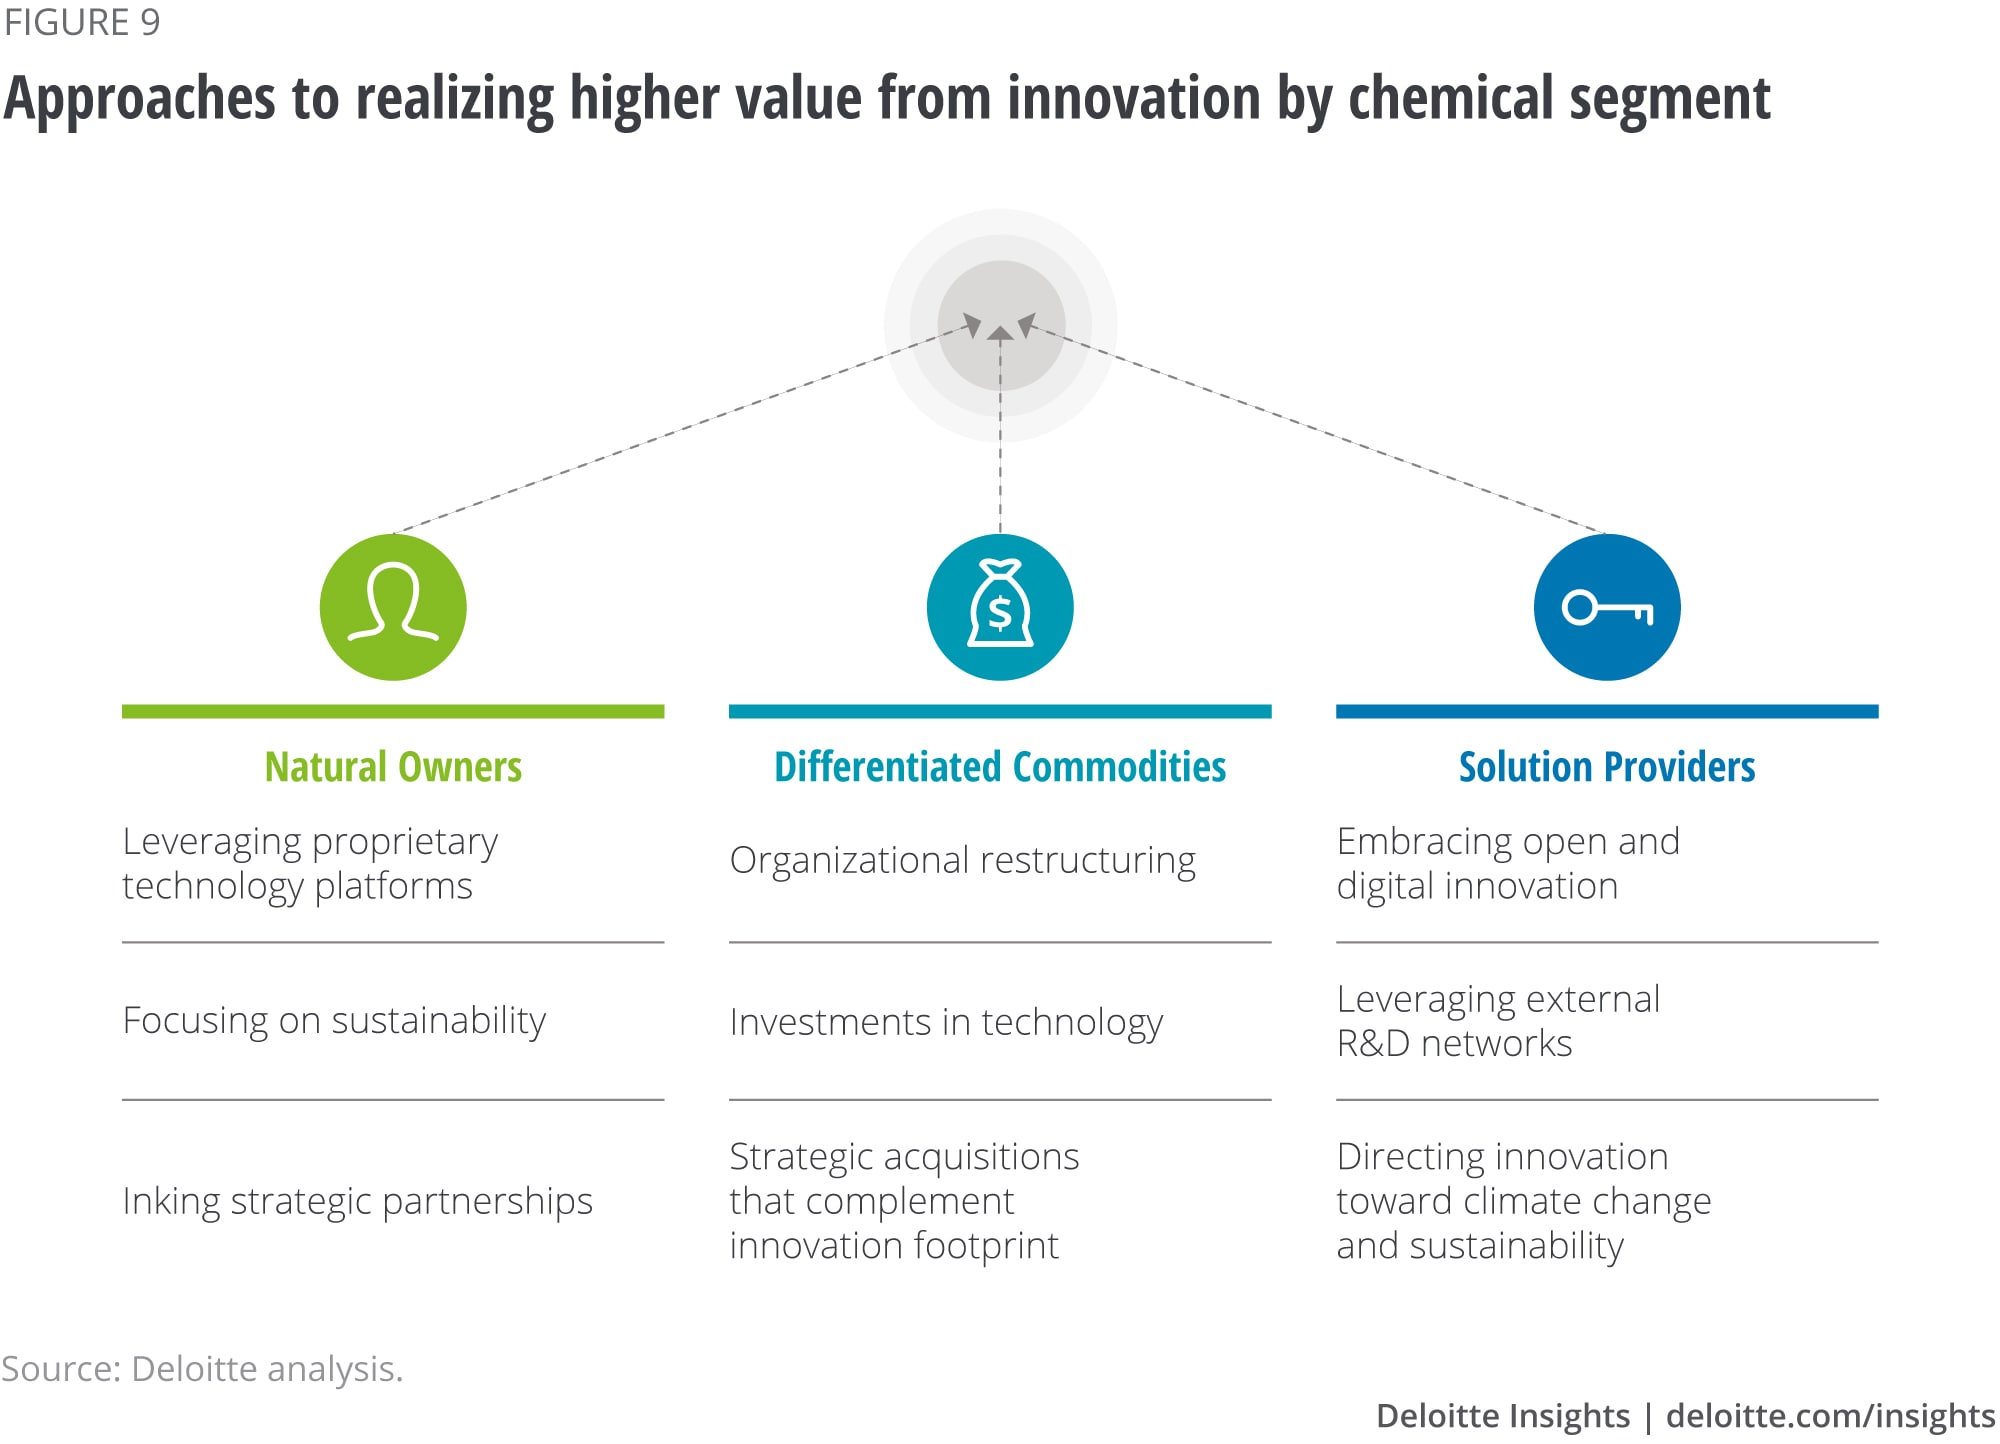 Approaches to realizing higher value from innovation by chemical segment